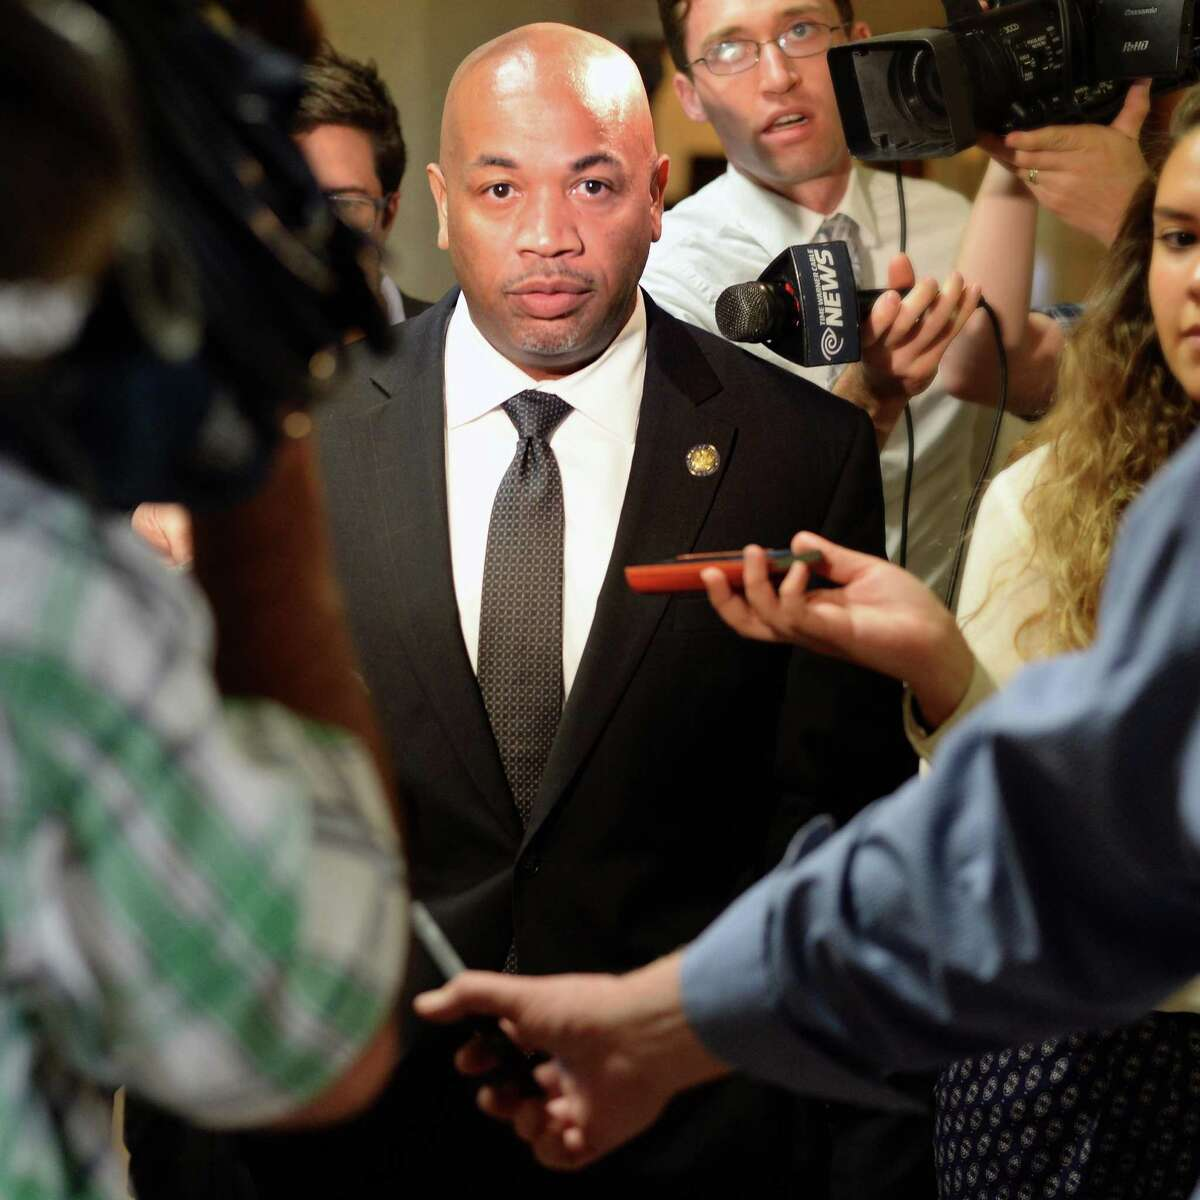 Assembly speaker Carl Heastie is beset by reporters following his meeting with Gov. Cuomo Wednesday June 17, 2015 at the Capitol in Albany, NY. (John Carl D'Annibale / Times Union)